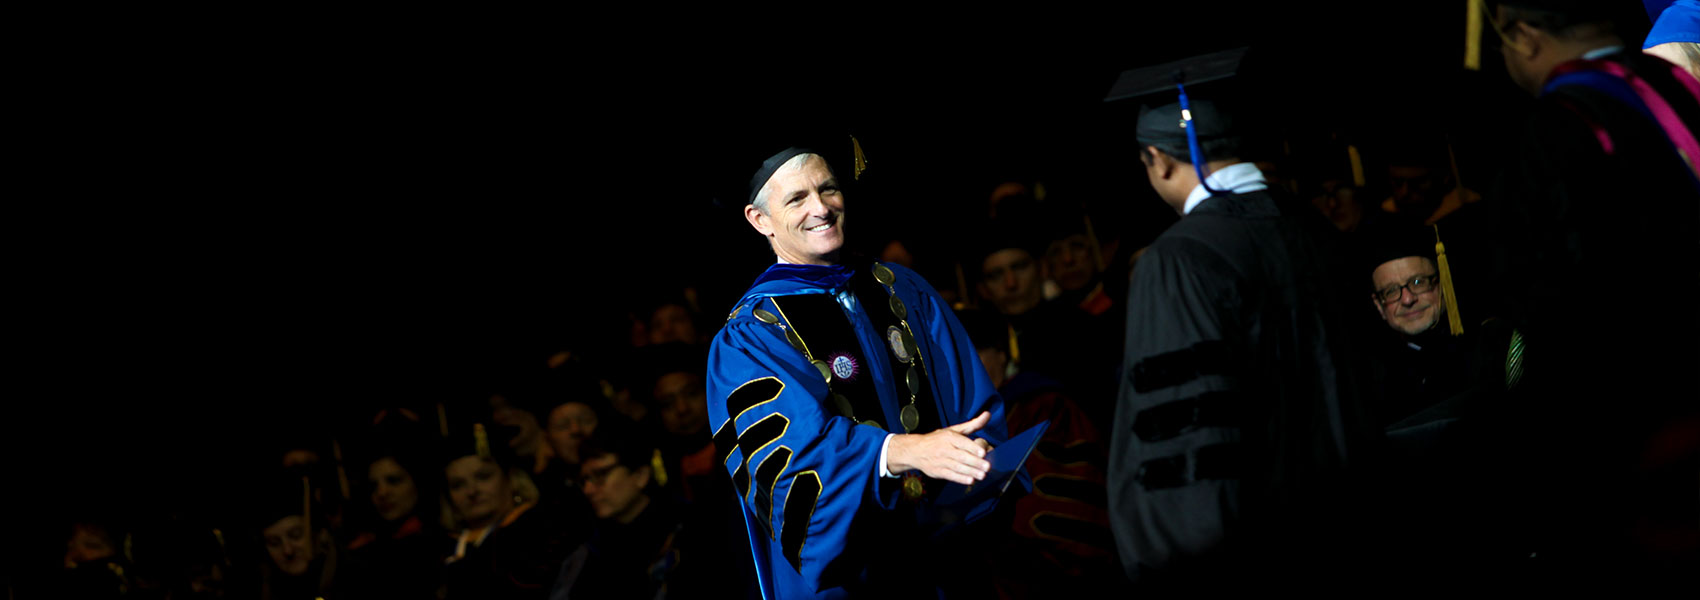 President Lovell shaking hands with a new graduate during commencement.